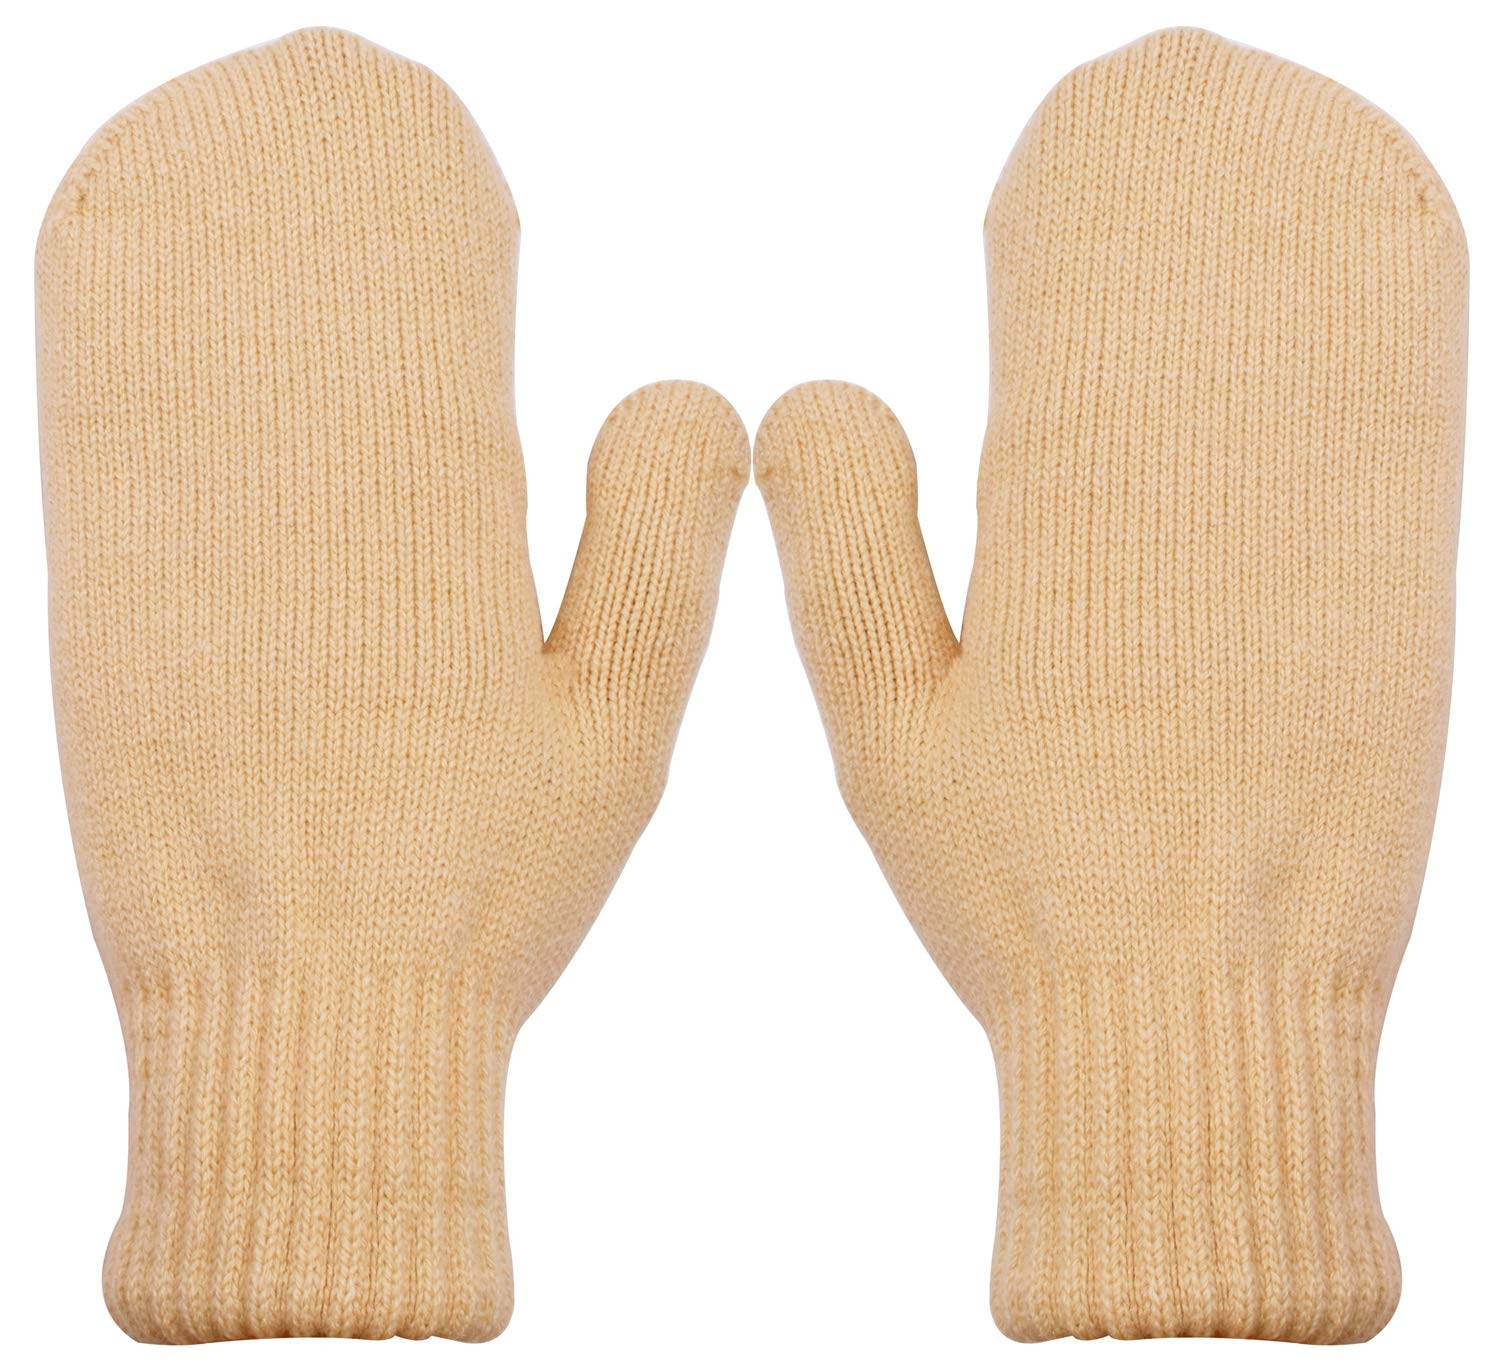 PZLE Women's Knitted Mittens Cashmere Winter Warm Thick Khaki